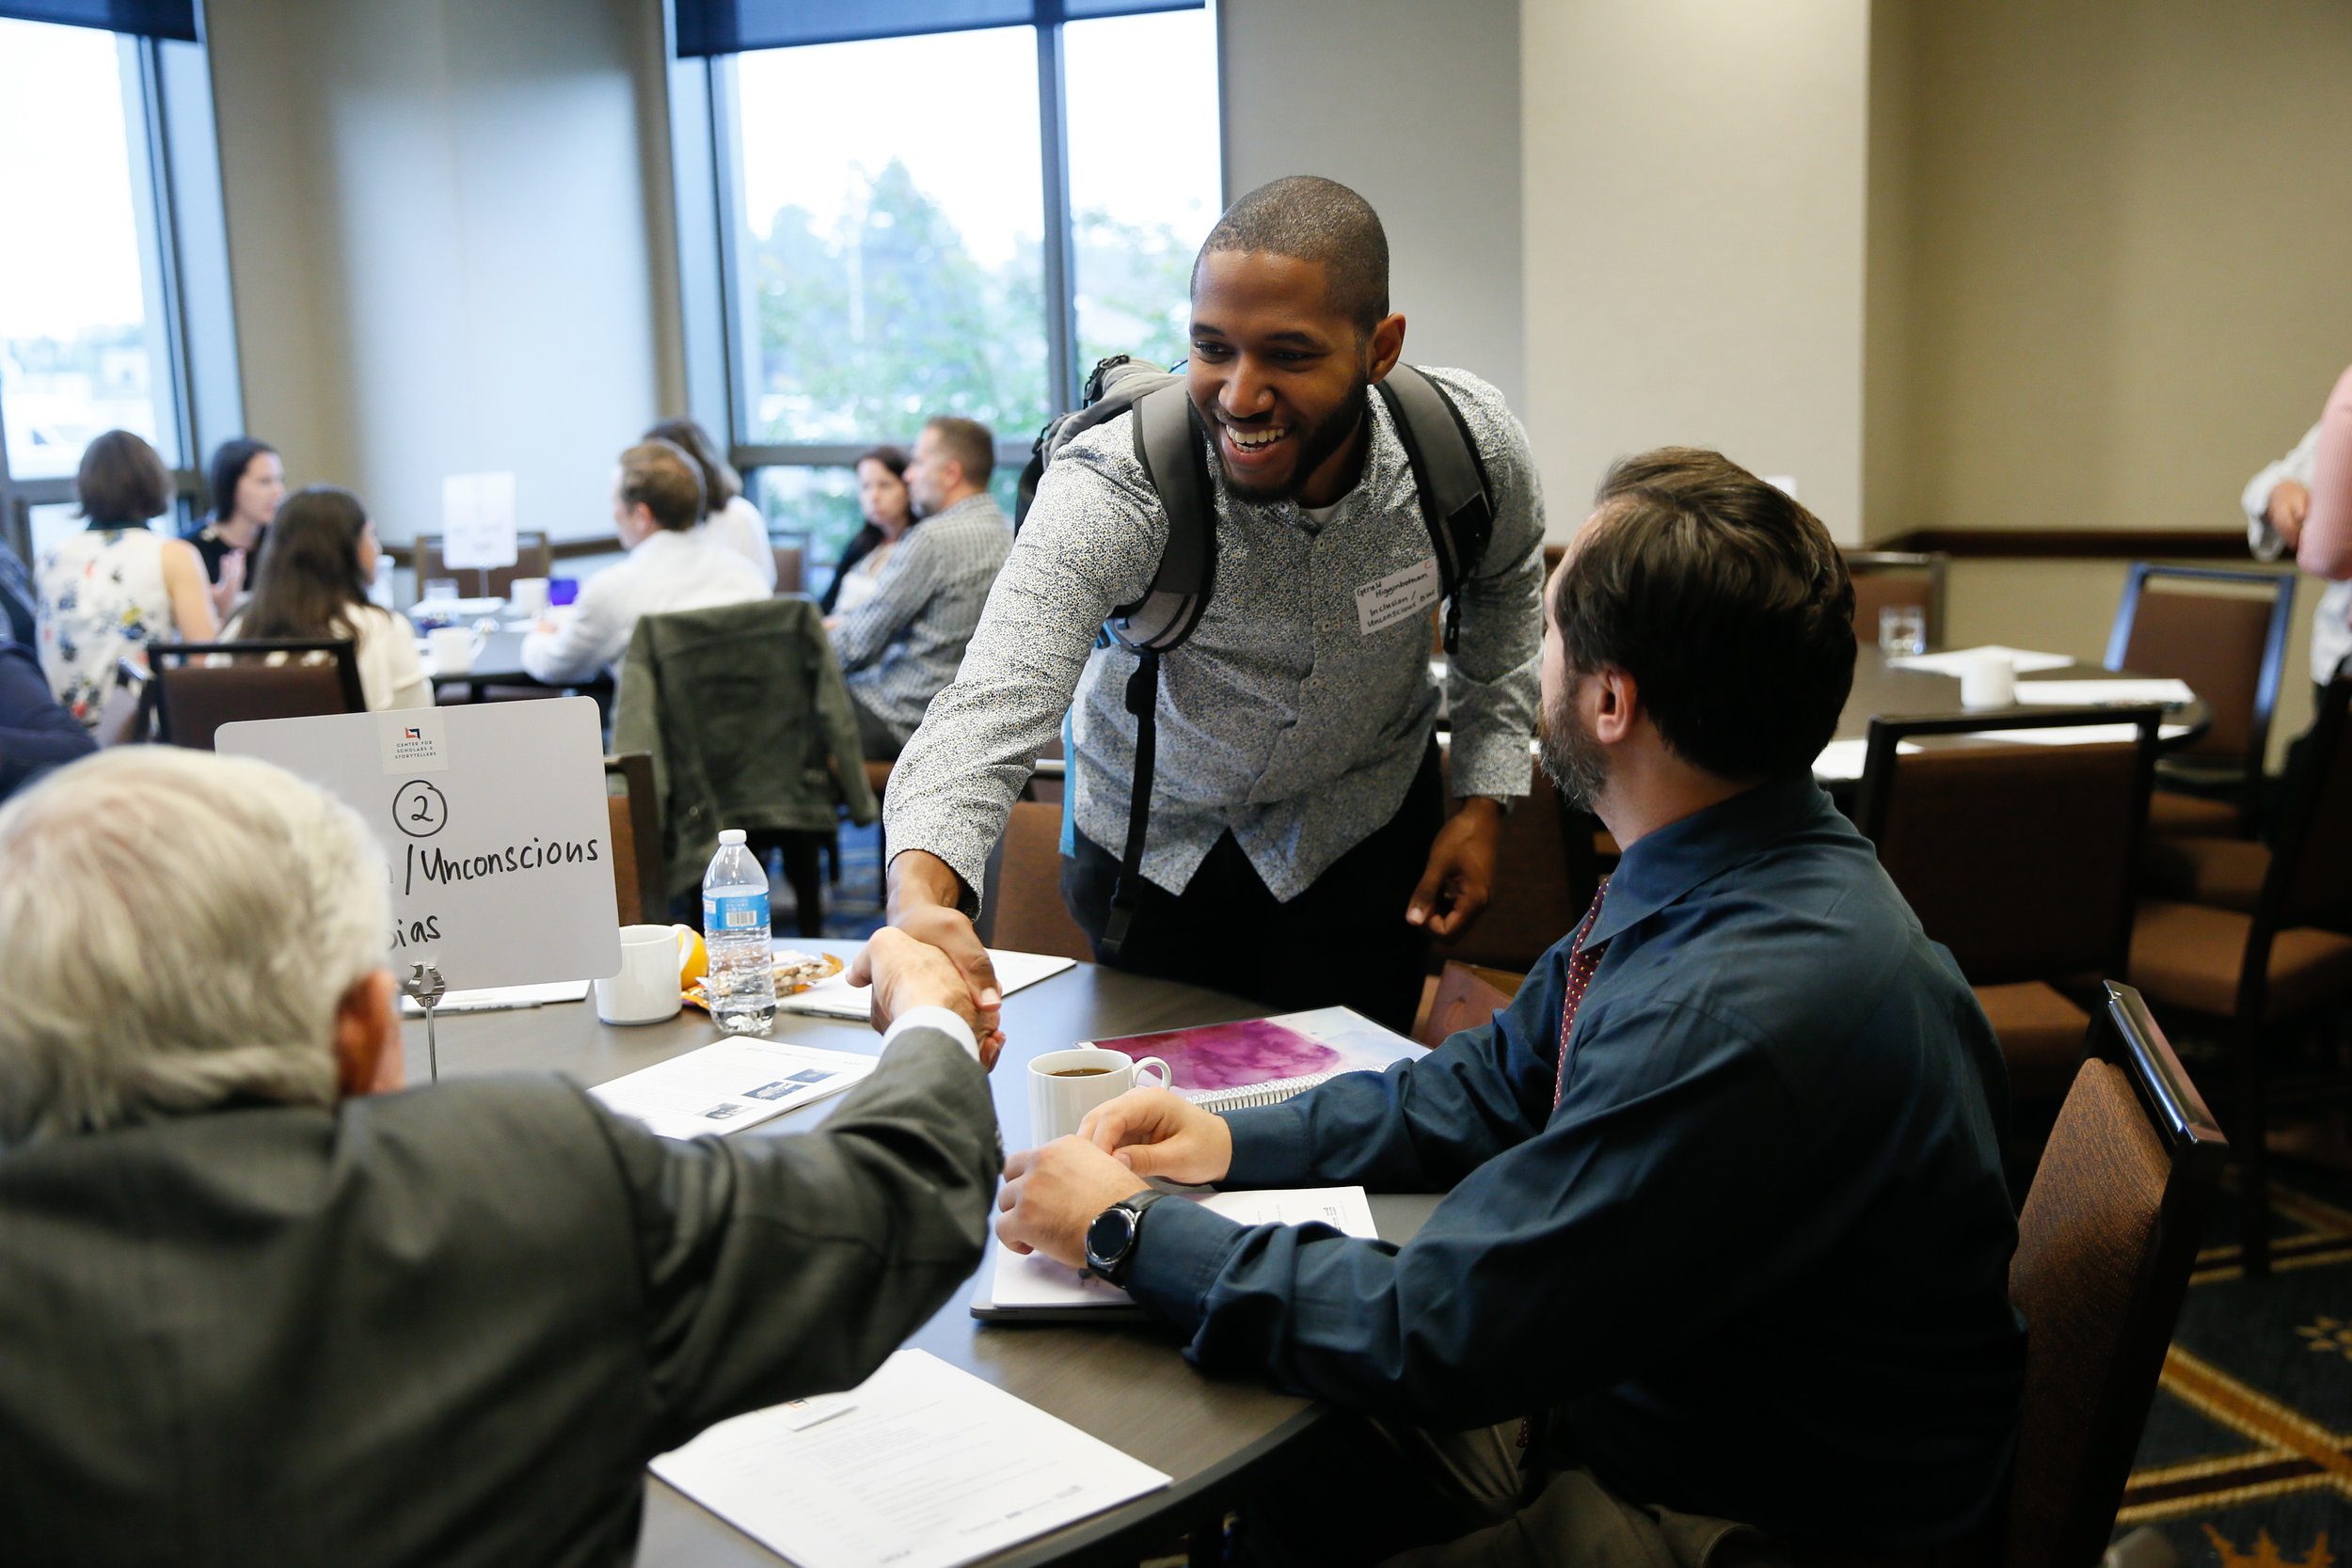 Morning introductions: Businessman and Diplomat Frank Baxter (left) Psychology graduate student Gerald Higginbotham, M.A. (center) and TFT student Matthew Johnson (right).